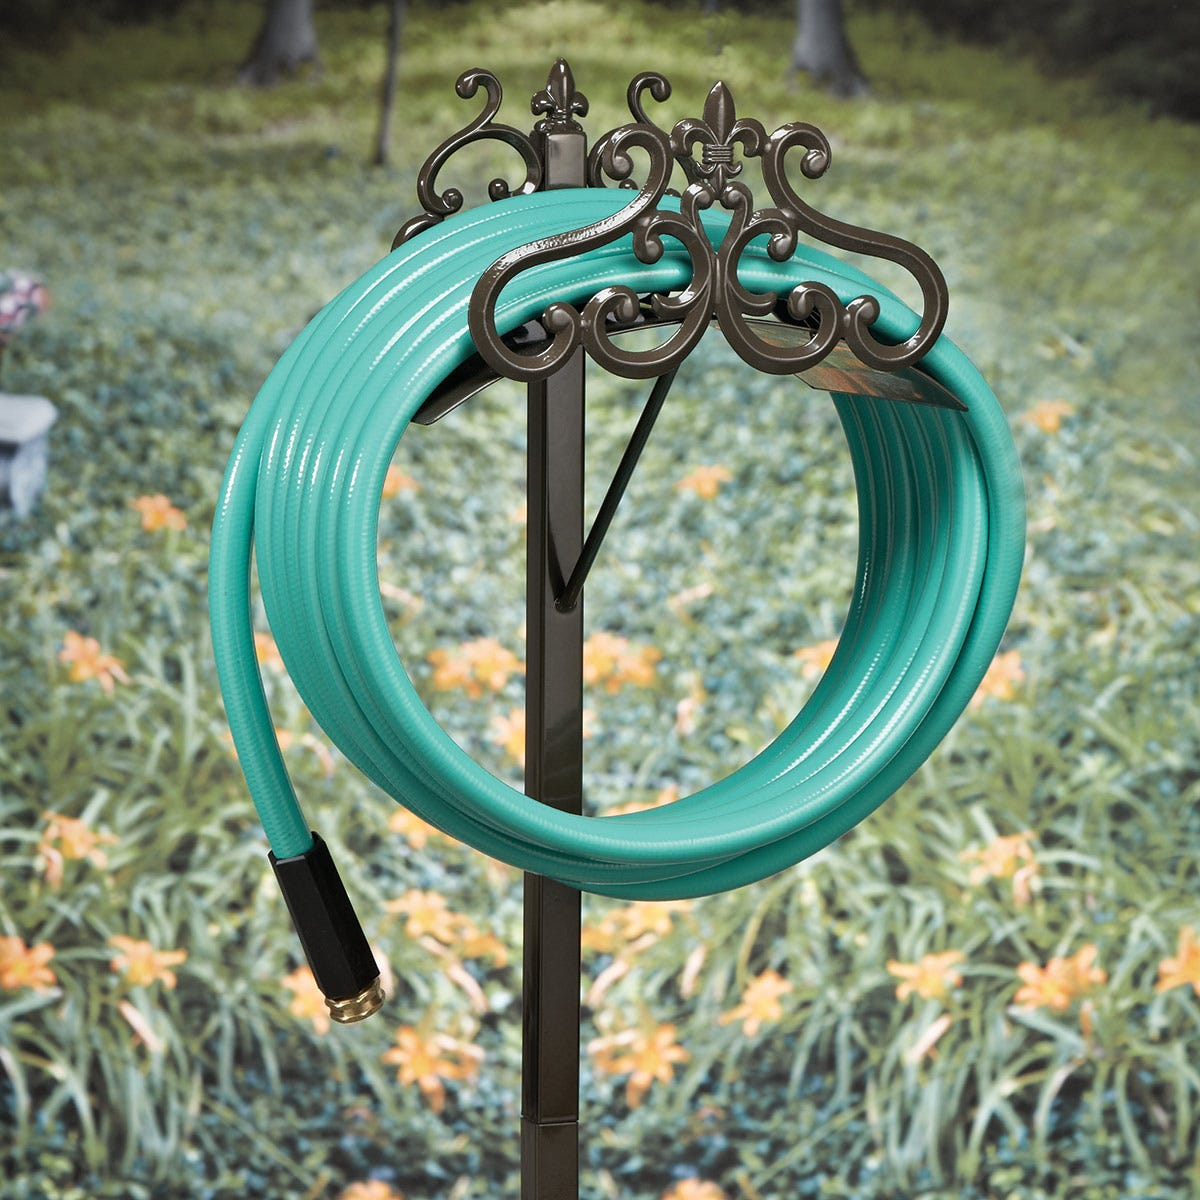 Decorative Hose Stand From Sportys Preferred Living